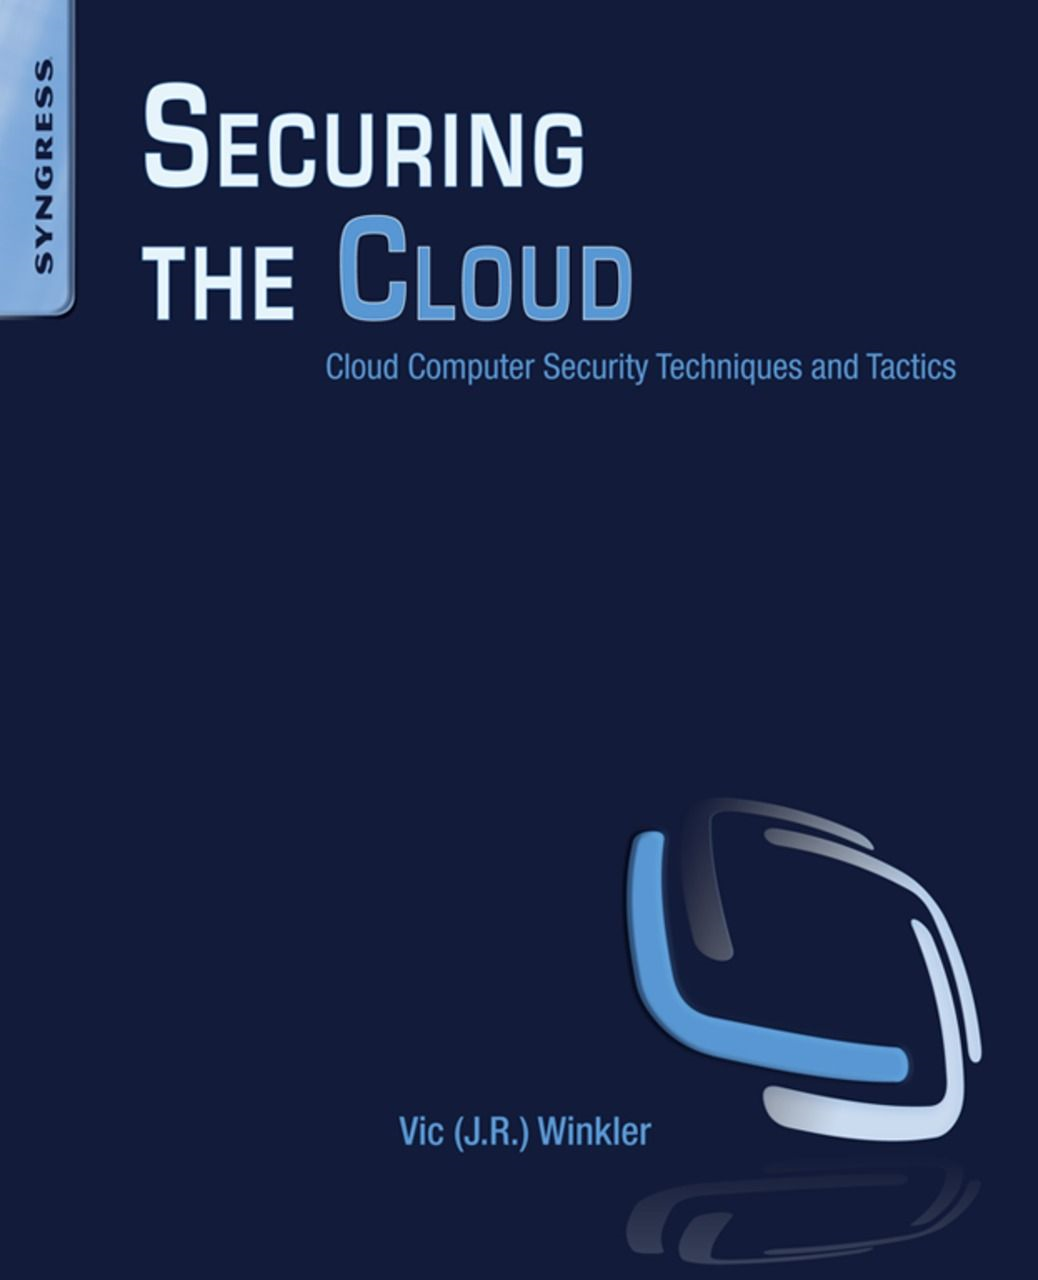 Securing the Cloud Cloud Computer Security Techniques and Tactics